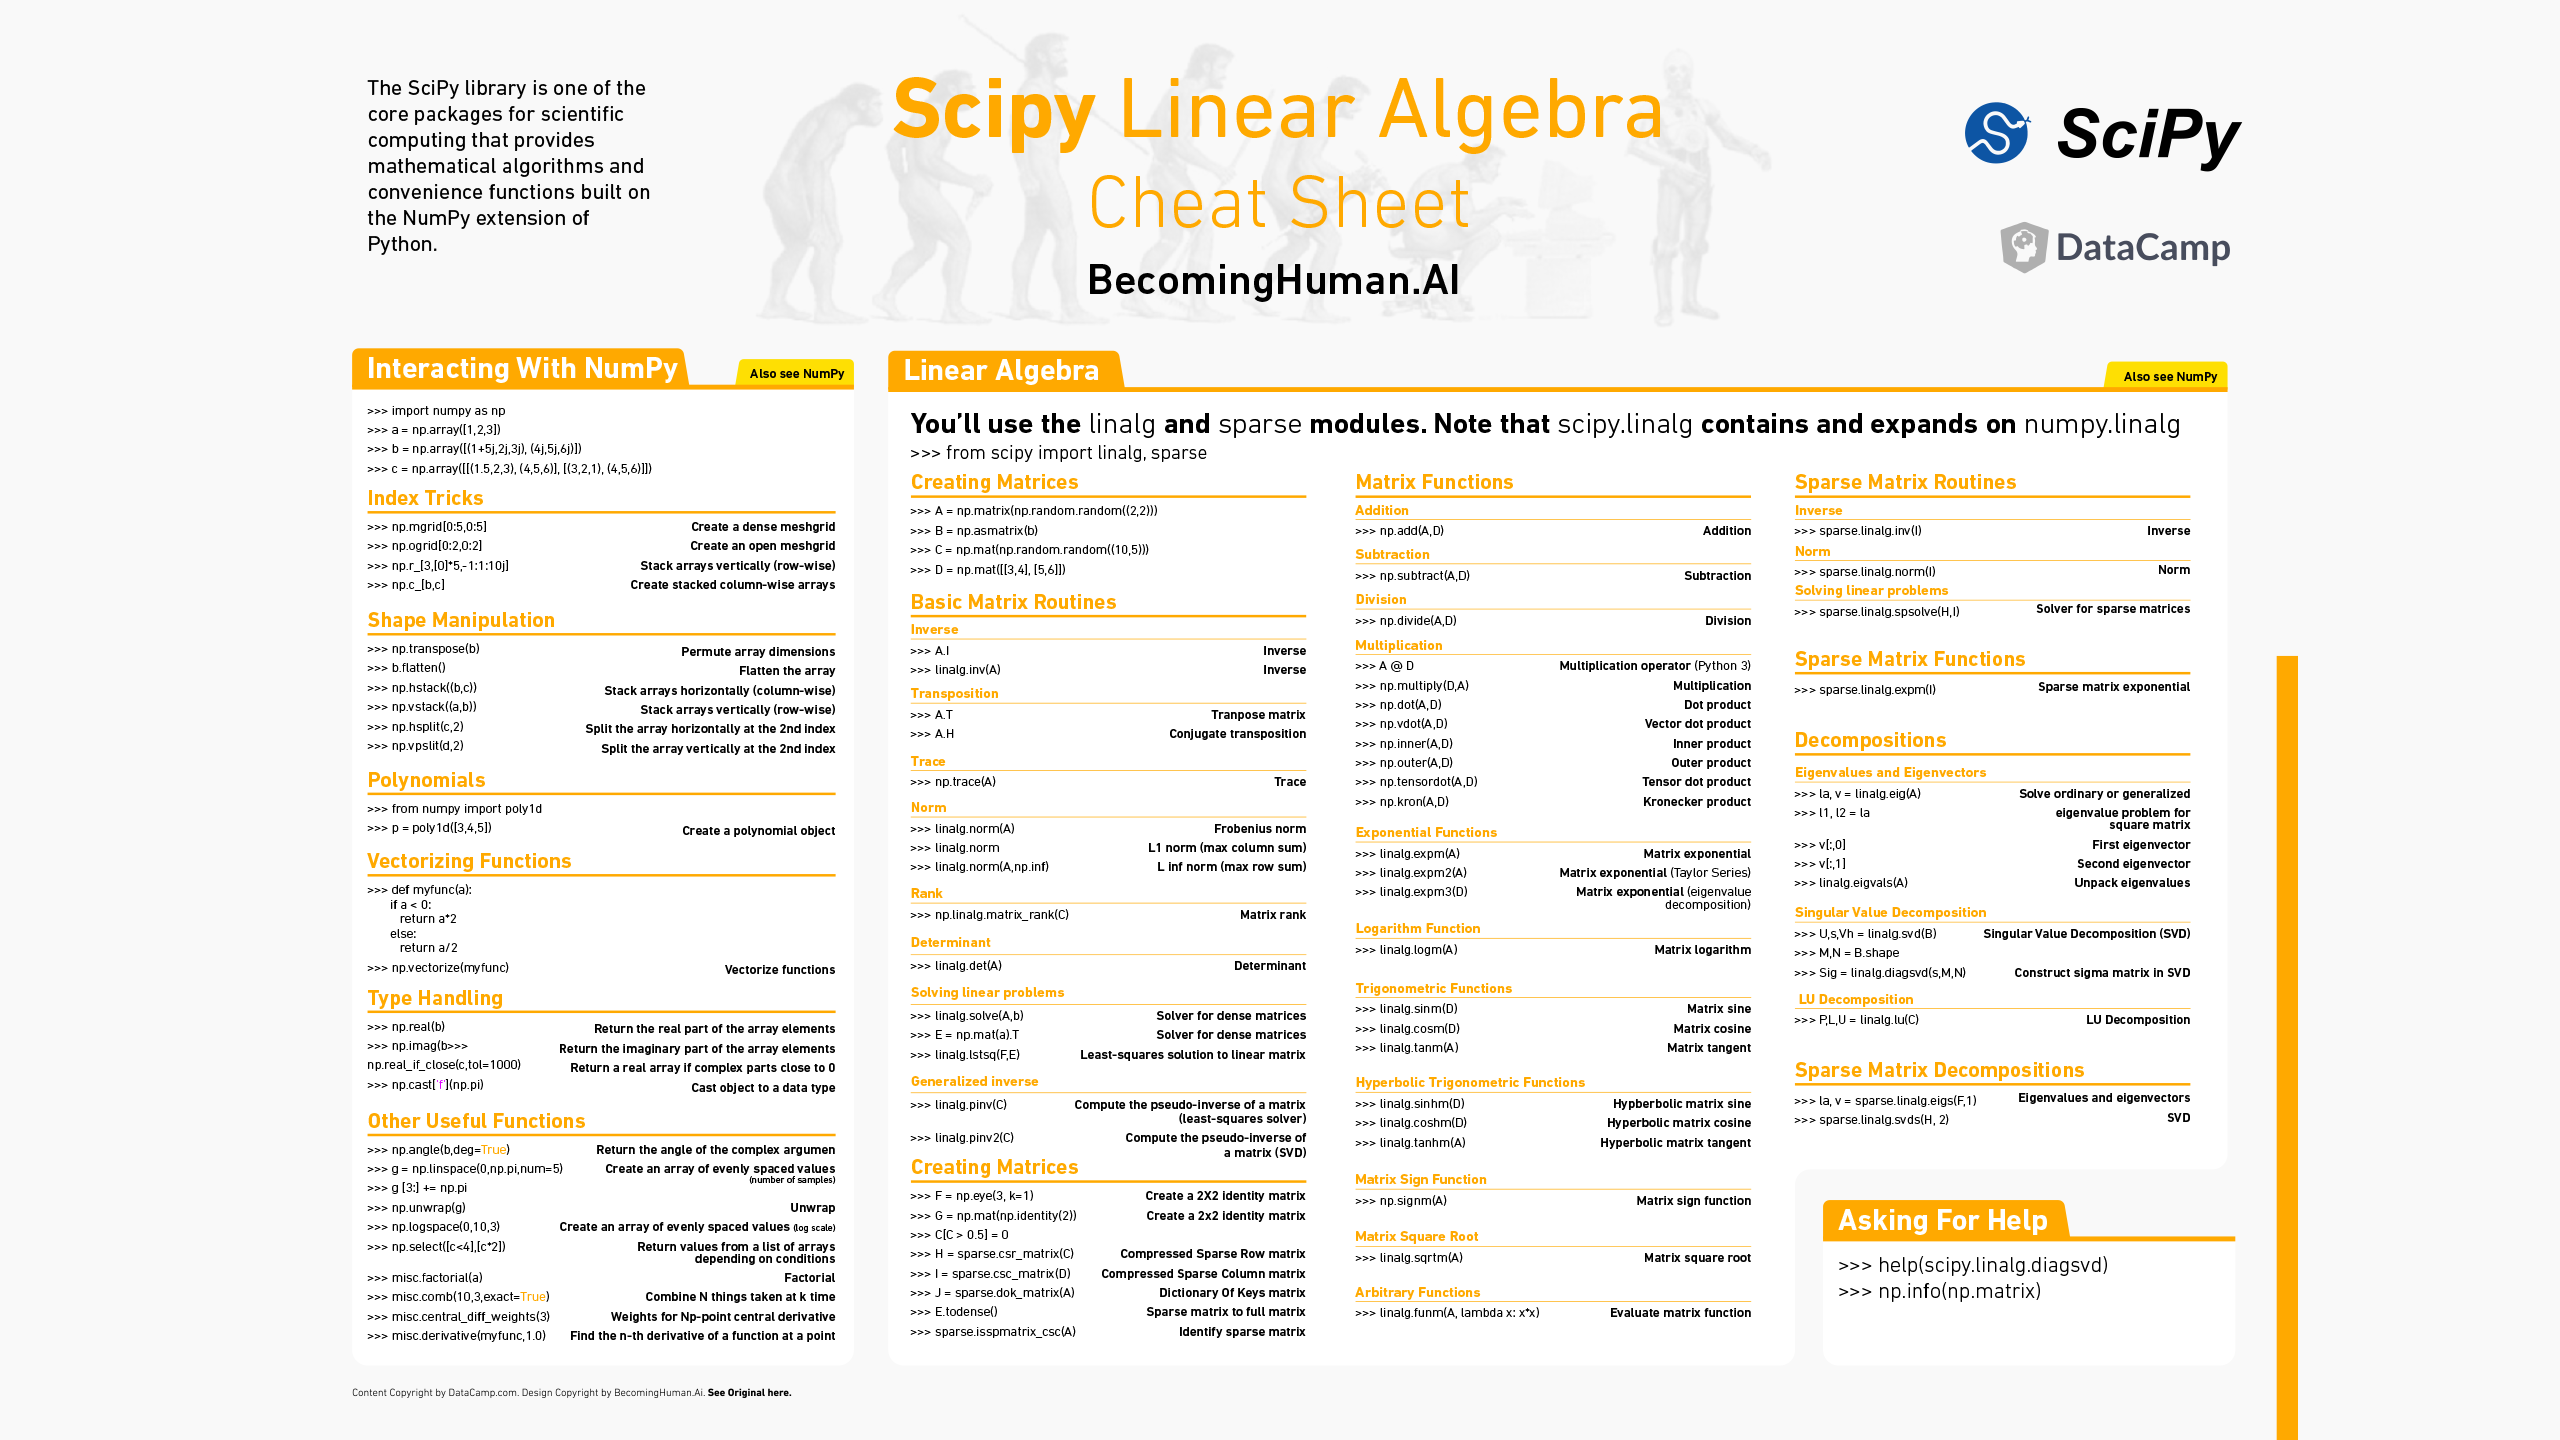 Downloadable: Cheat Sheets for AI, Neural Networks, Machine Learning